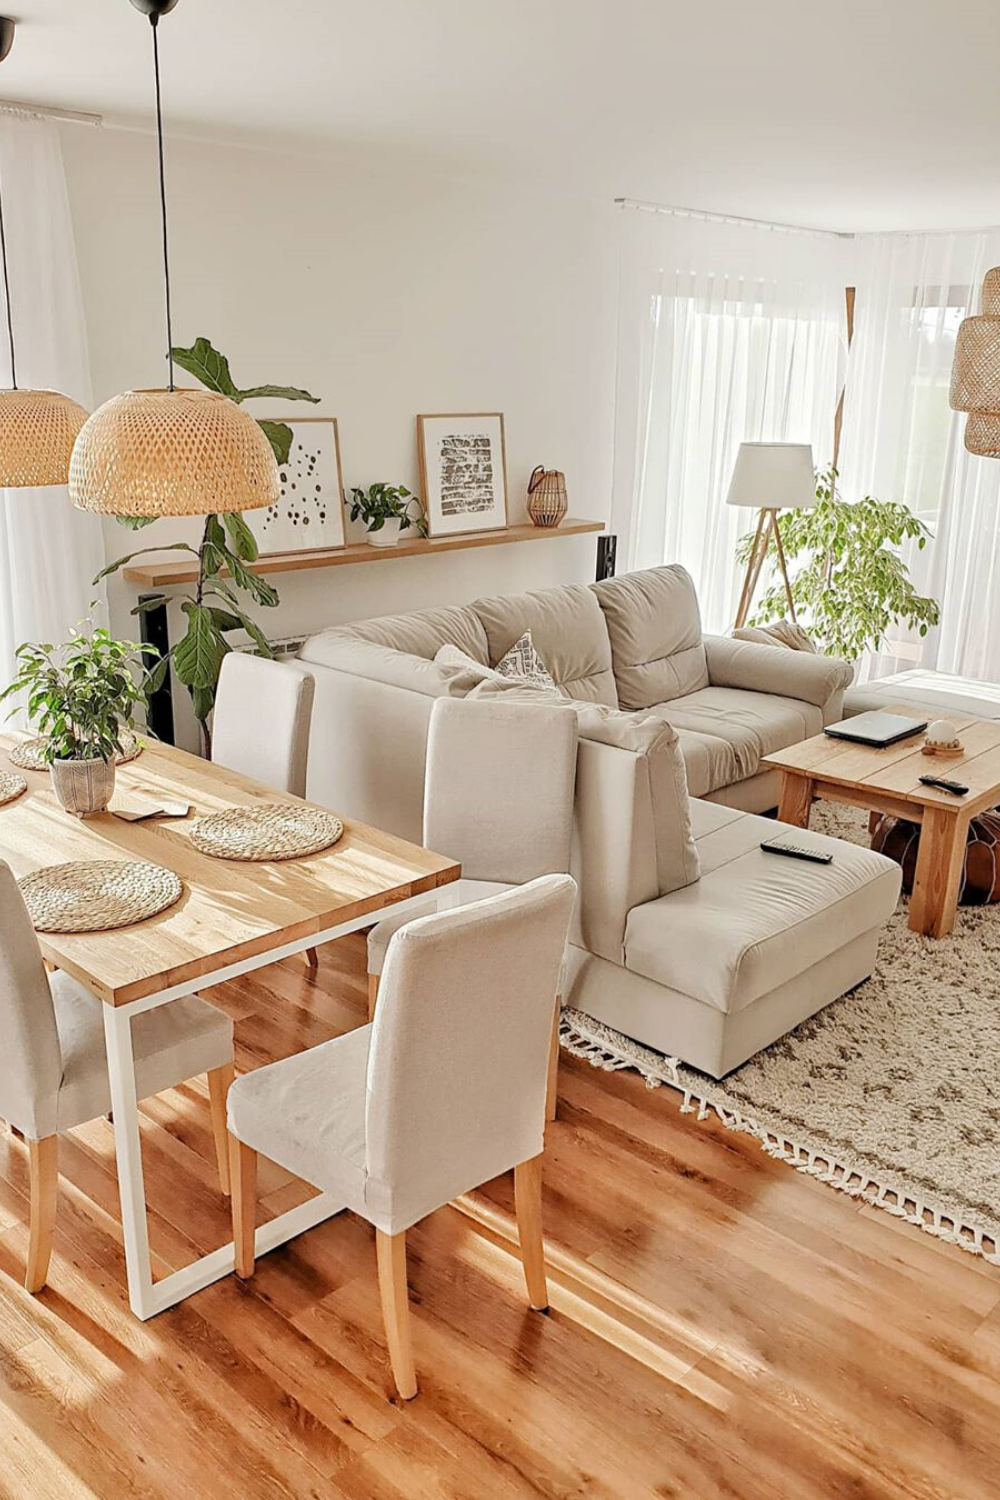 30 Cute Living Room Design Ideas You Ll Want To Steal Asap In